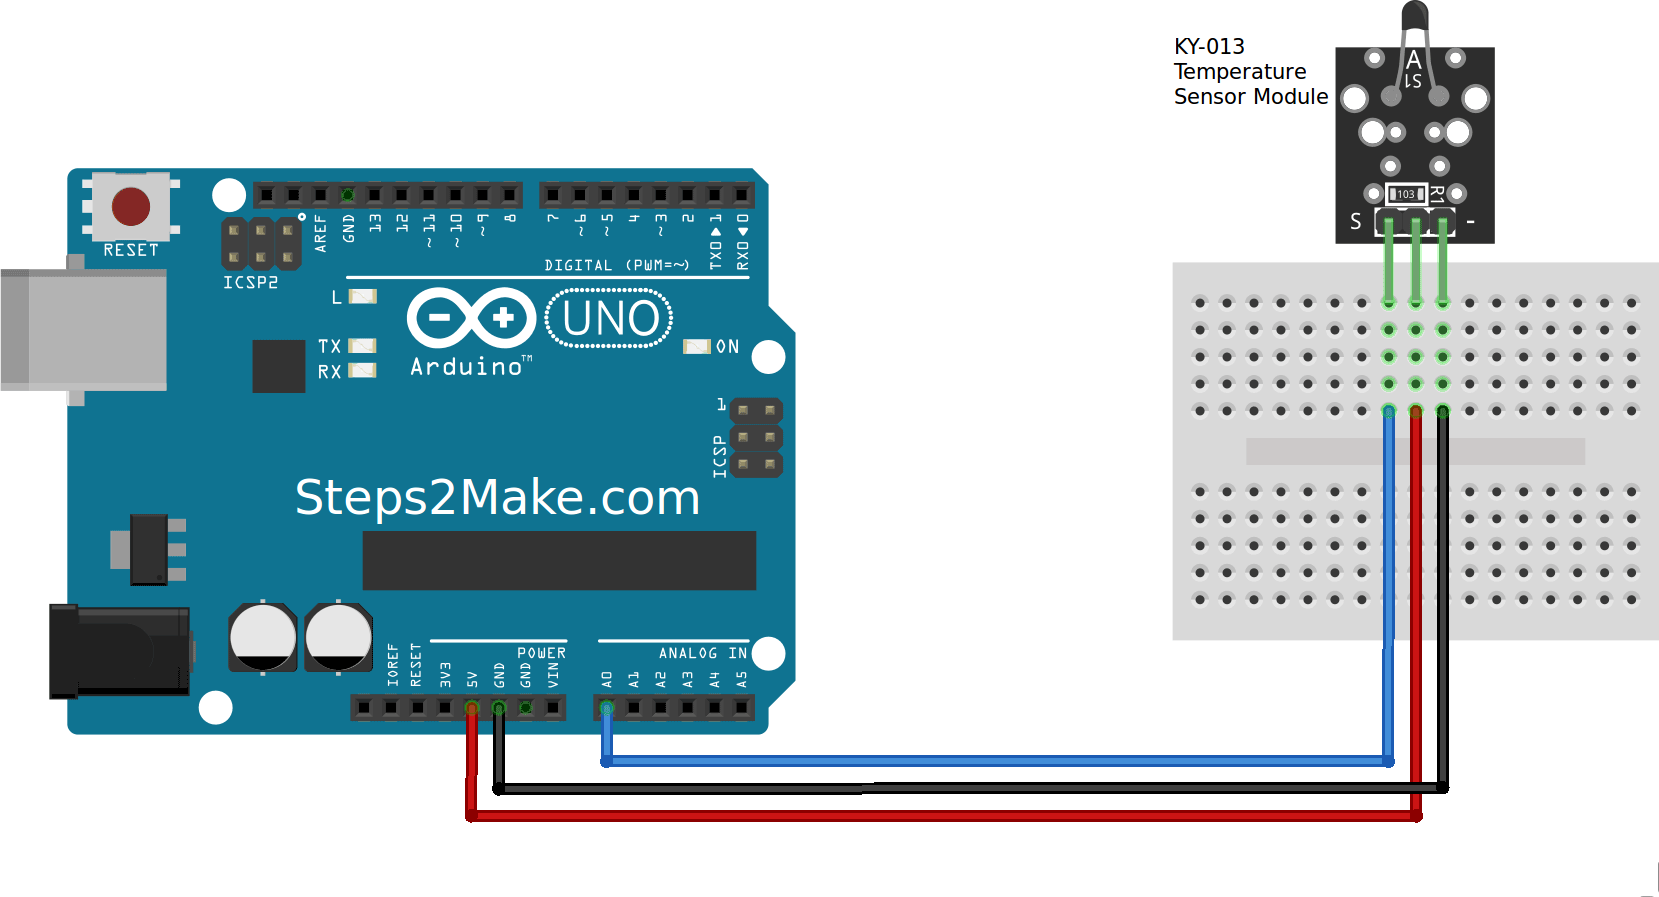 Figure 1: Arduino Connection with Temperature Sensor